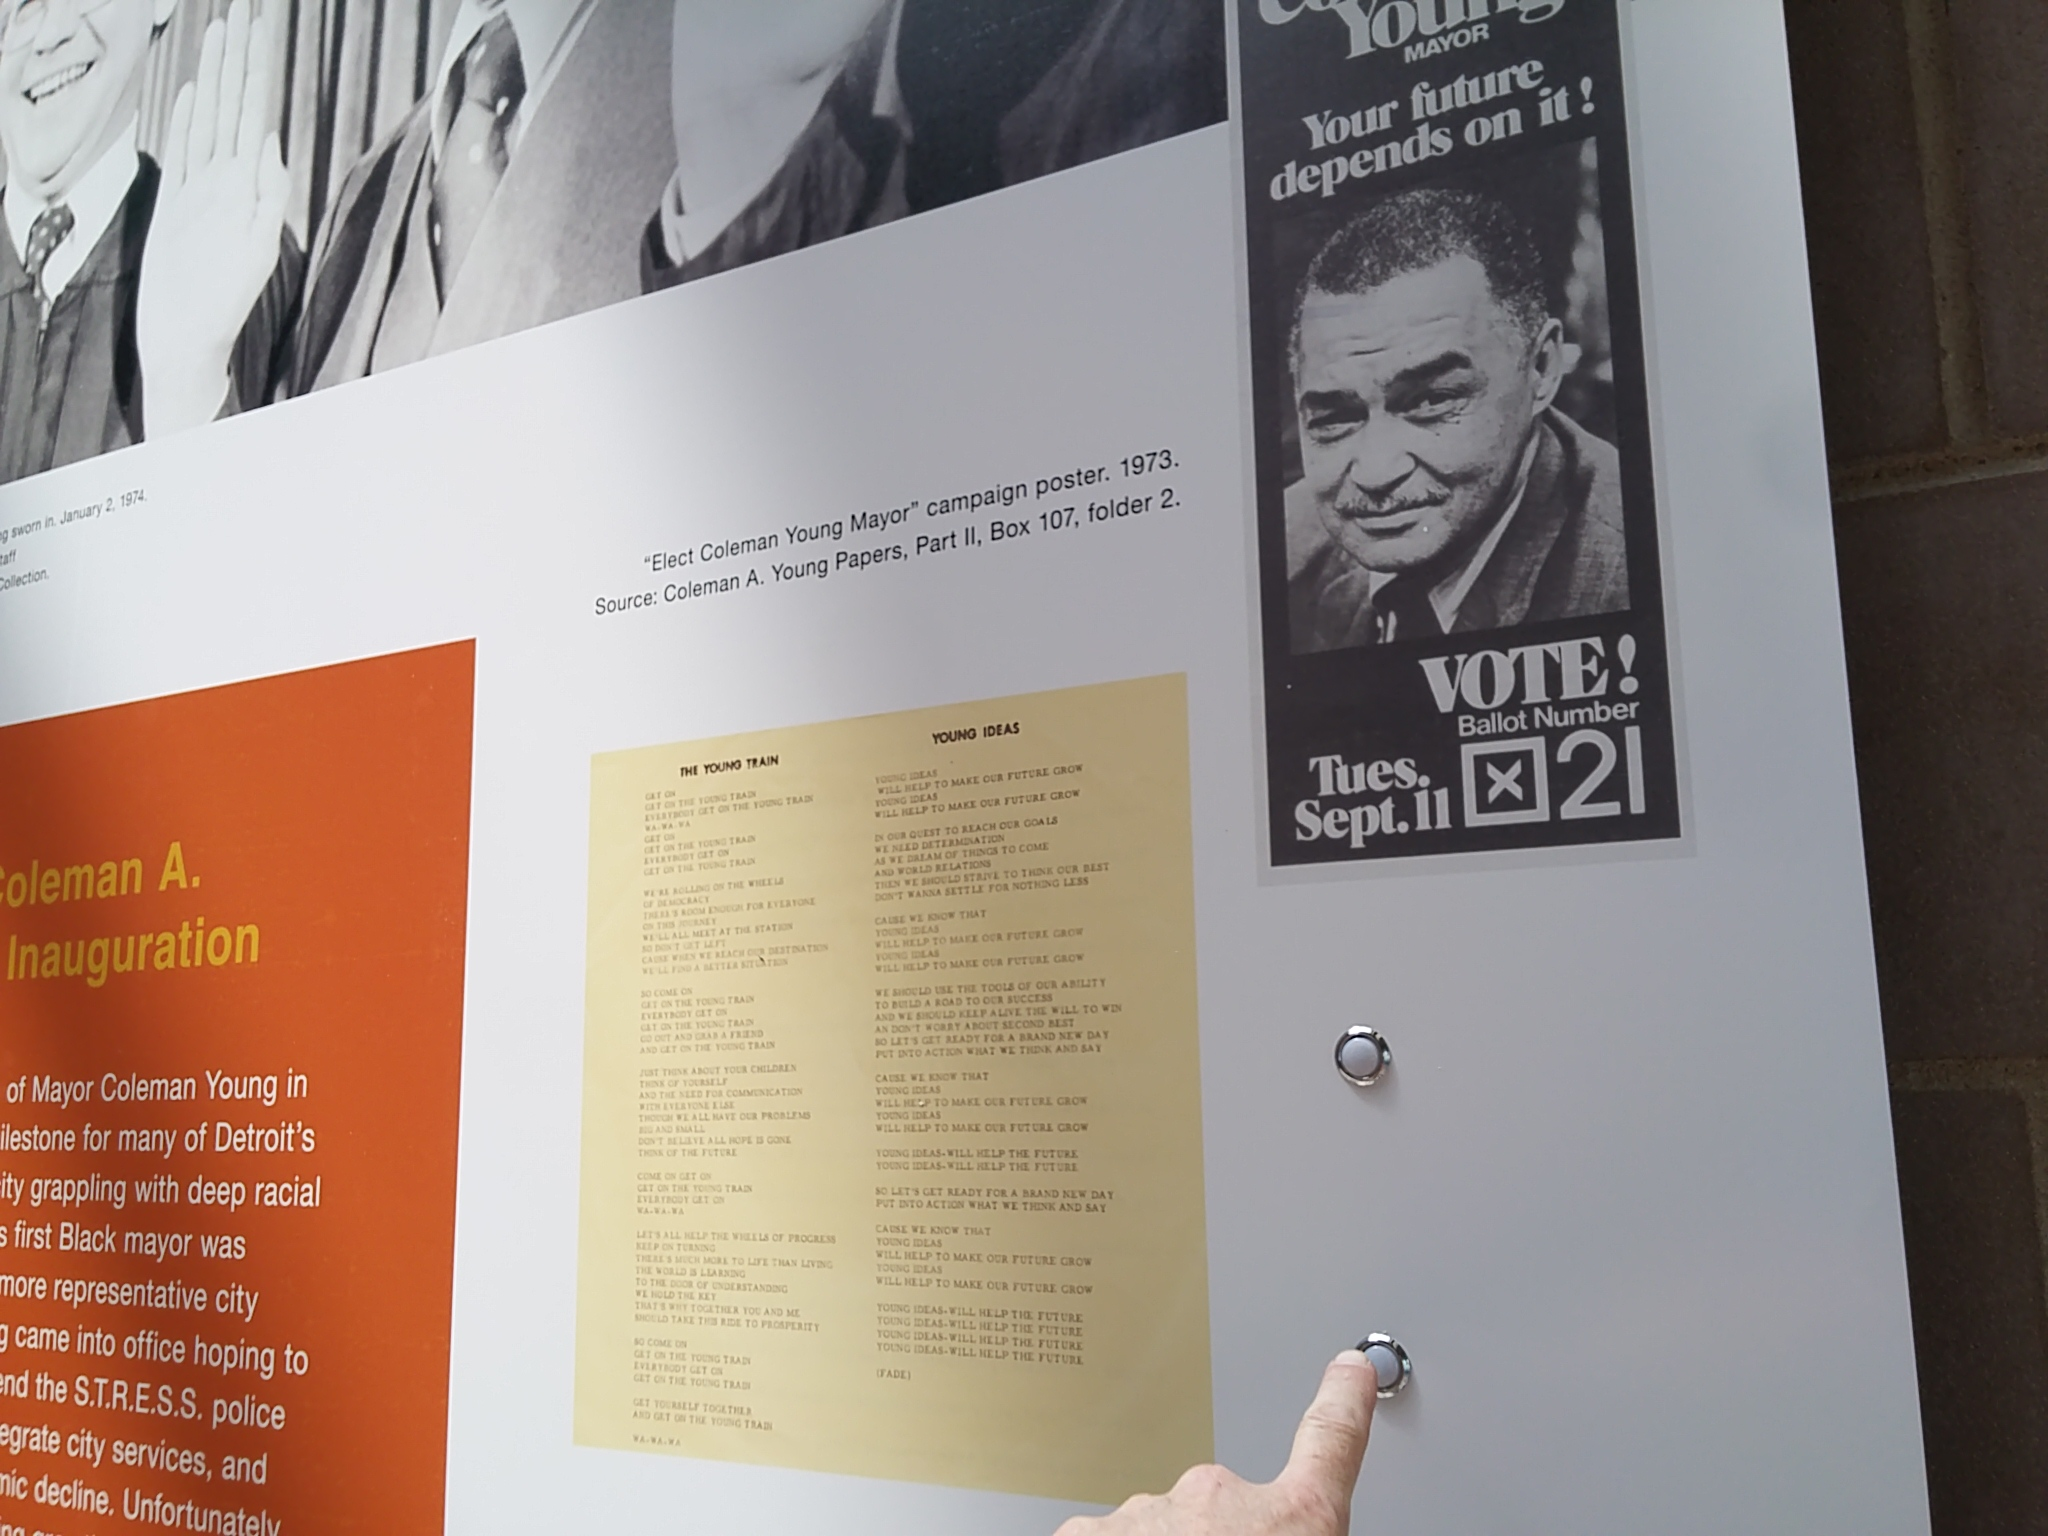 Push button interactives Flutter & Wow designed for the 12th Street Detroit 1967 exhibit.